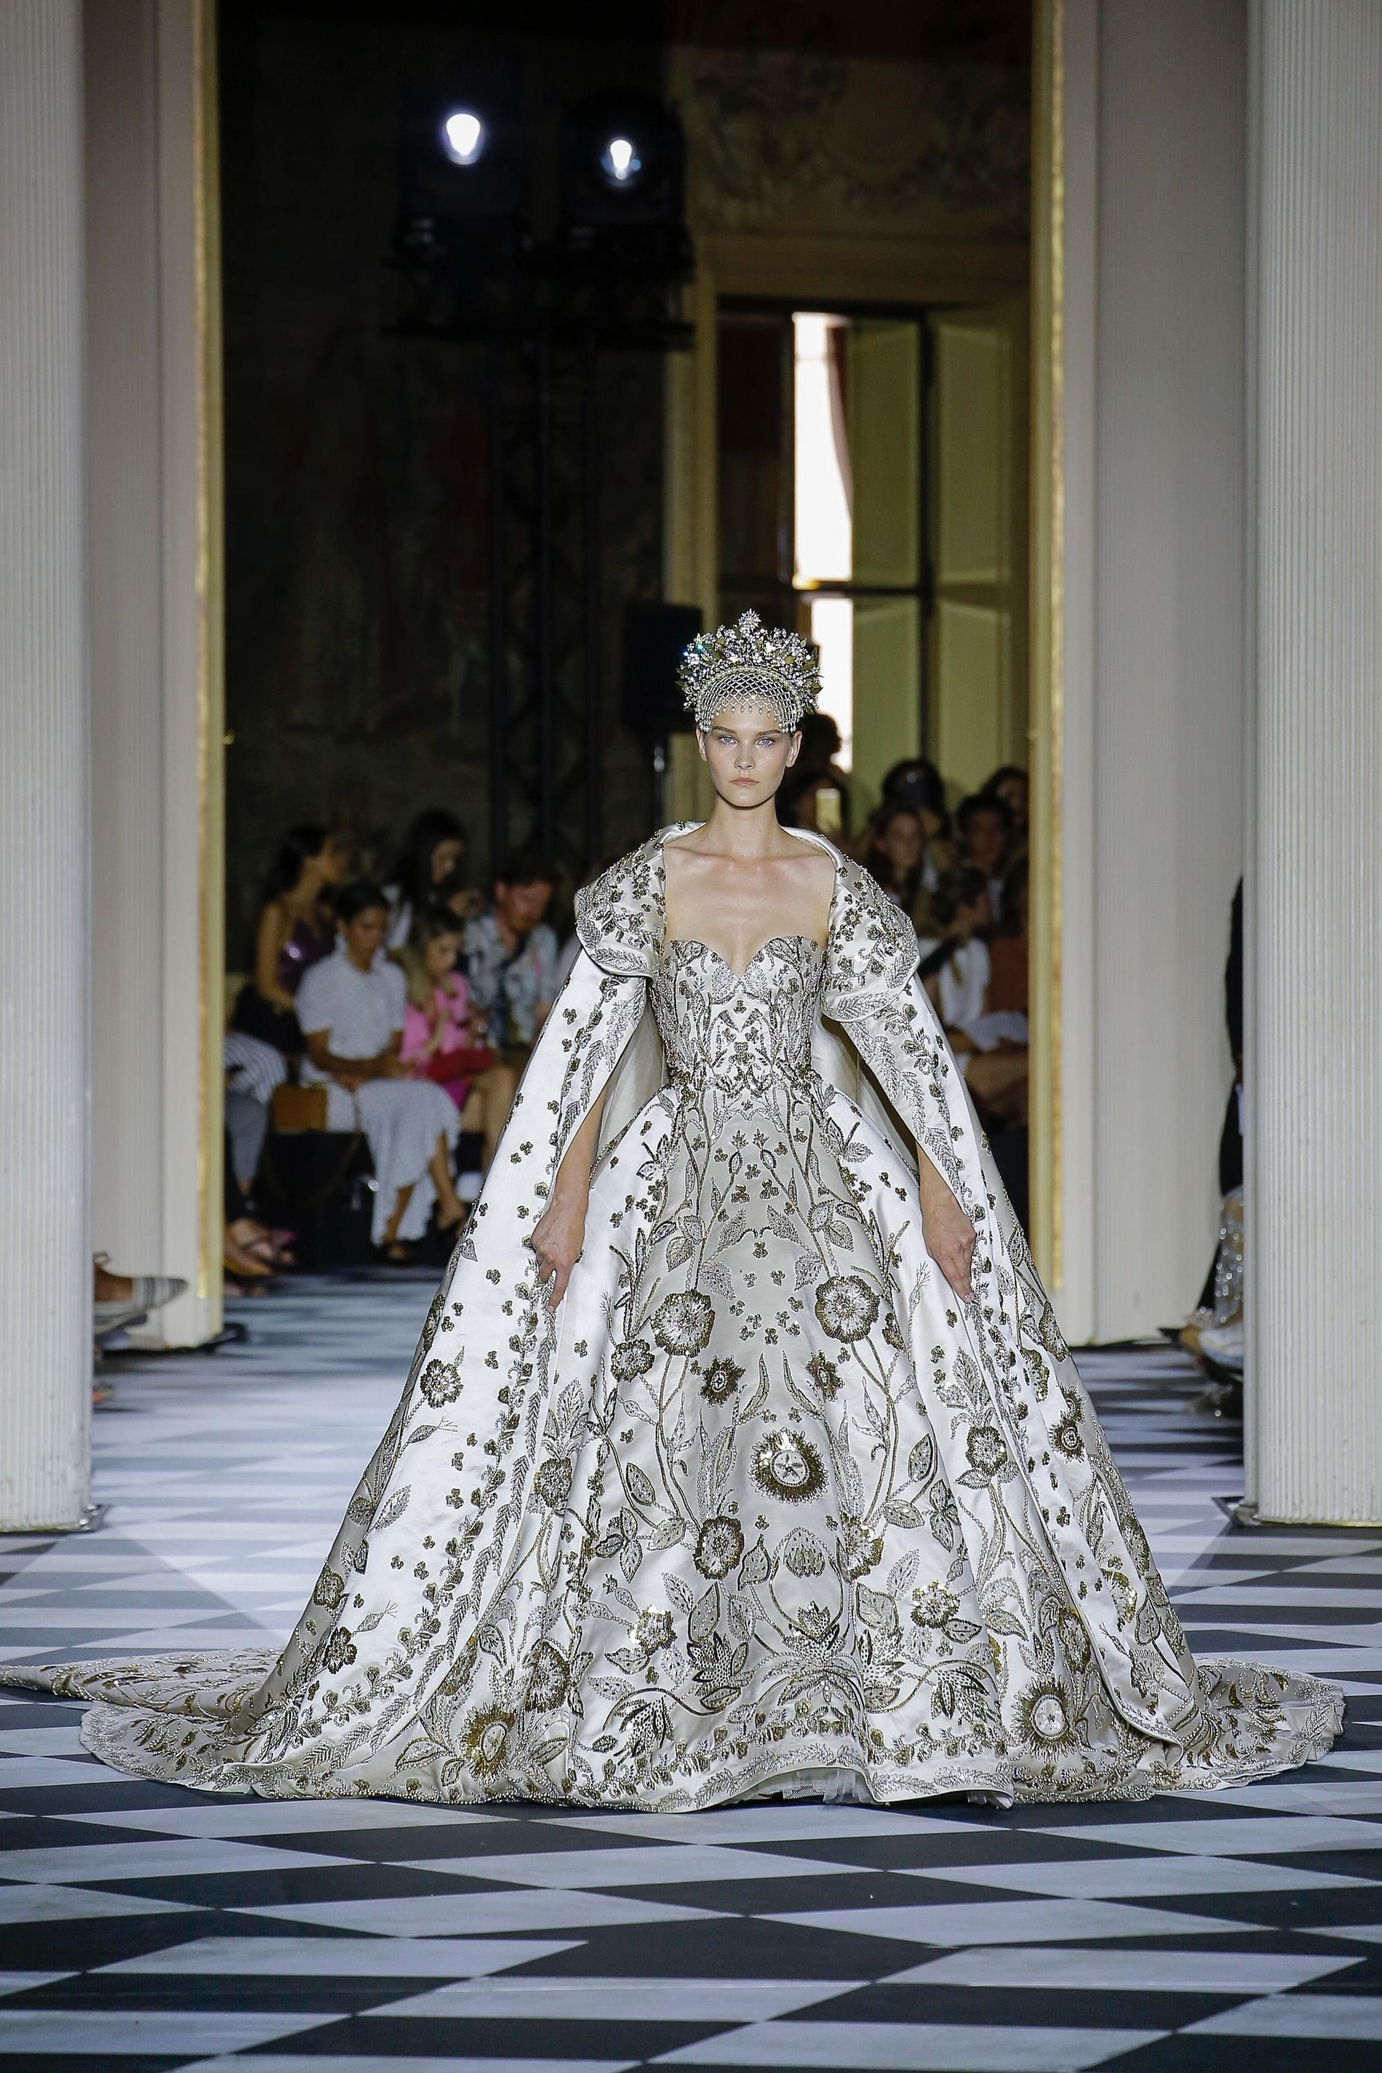 Zuhair Murad, Haute Couture, Imperial Russia Collection, Fall/Winter 2018/2019, Paris Fashion Week